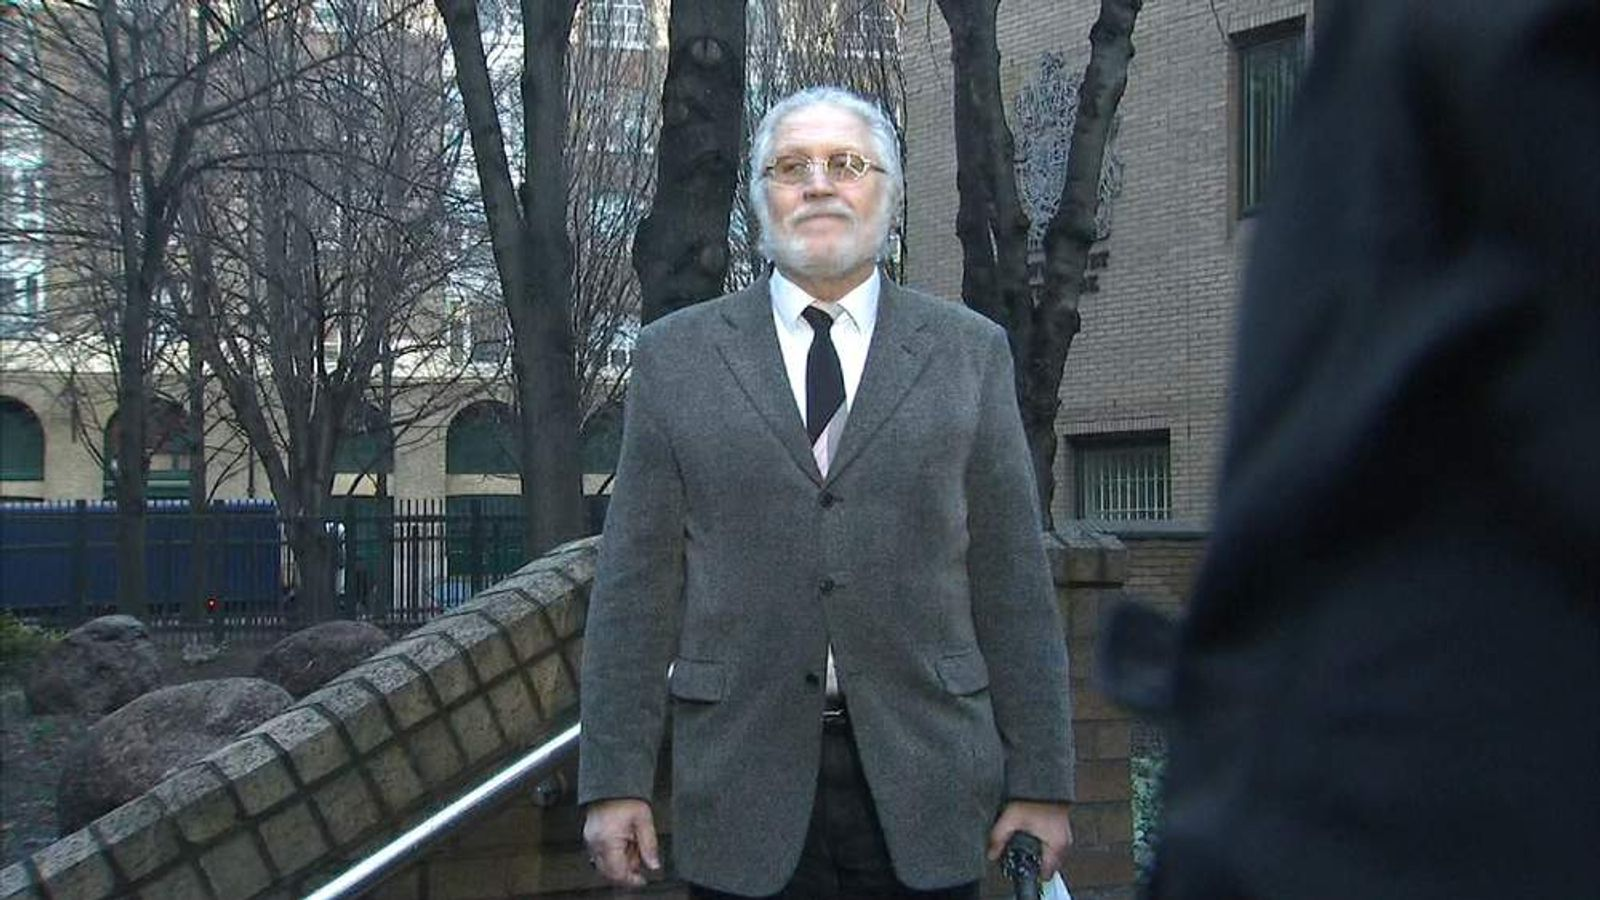 Dave Lee Travis arrives for court on Thursday